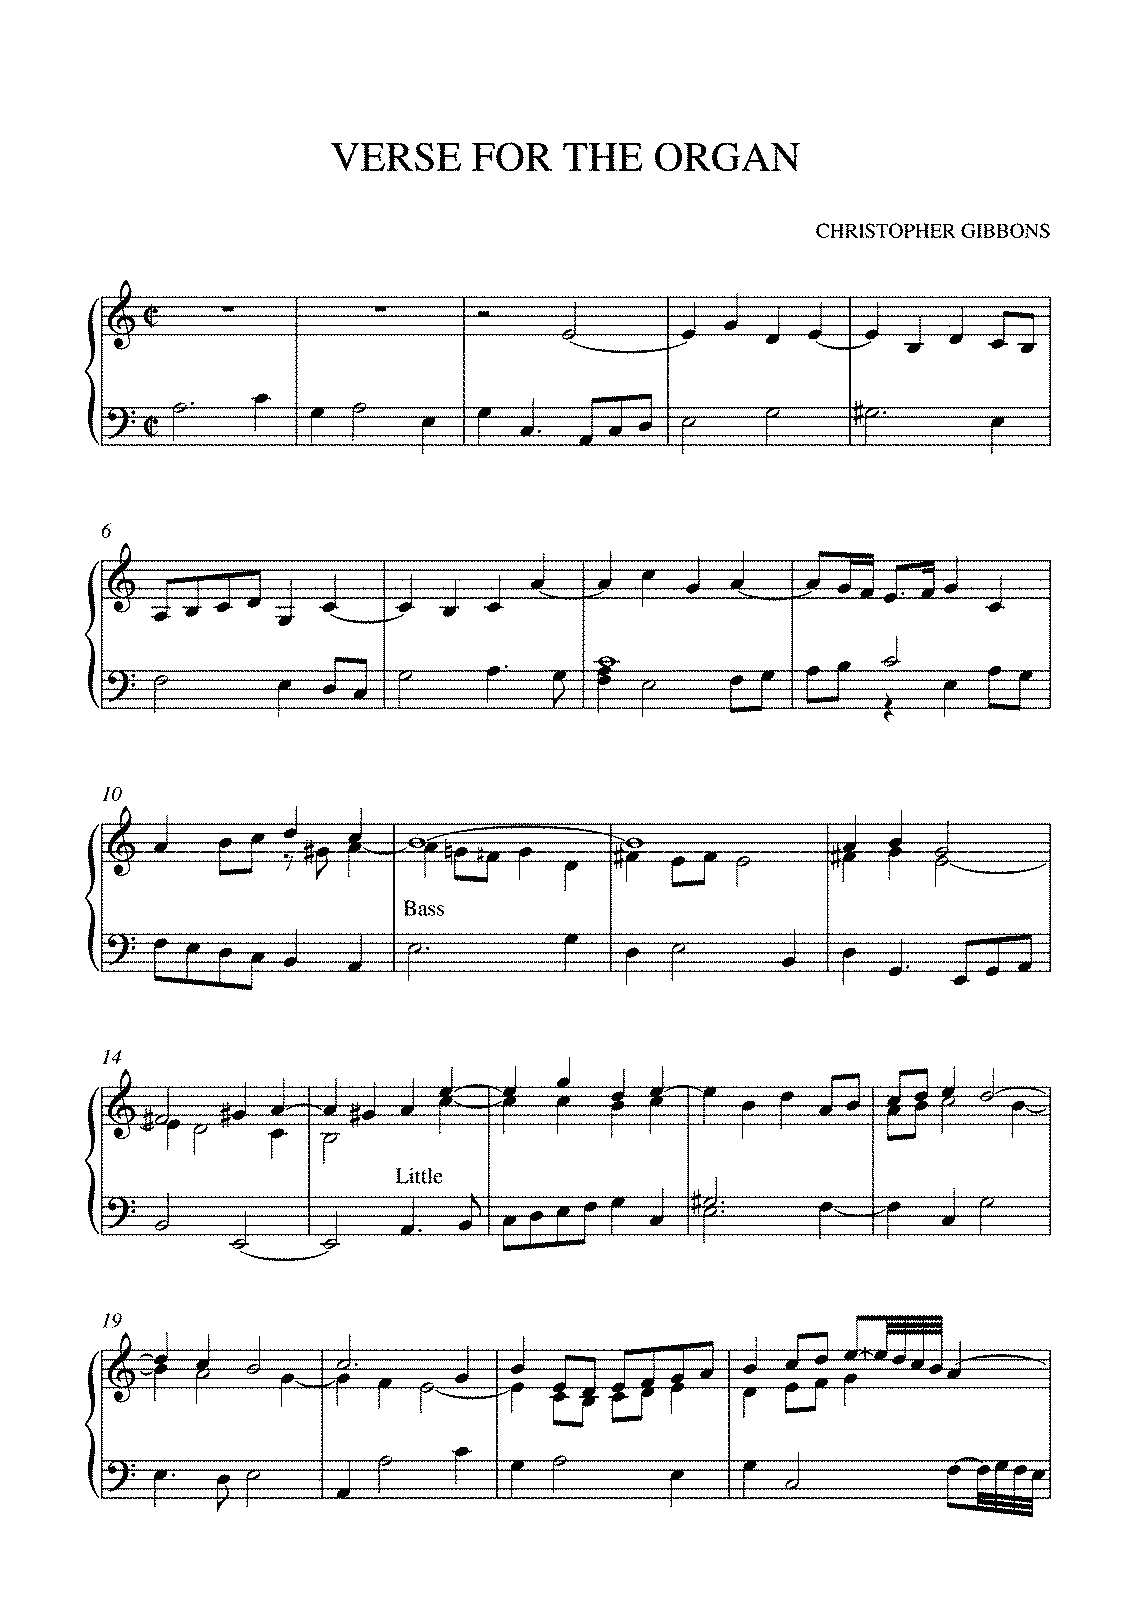 PMLP336883-C Gibbons Verse in A minor.pdf